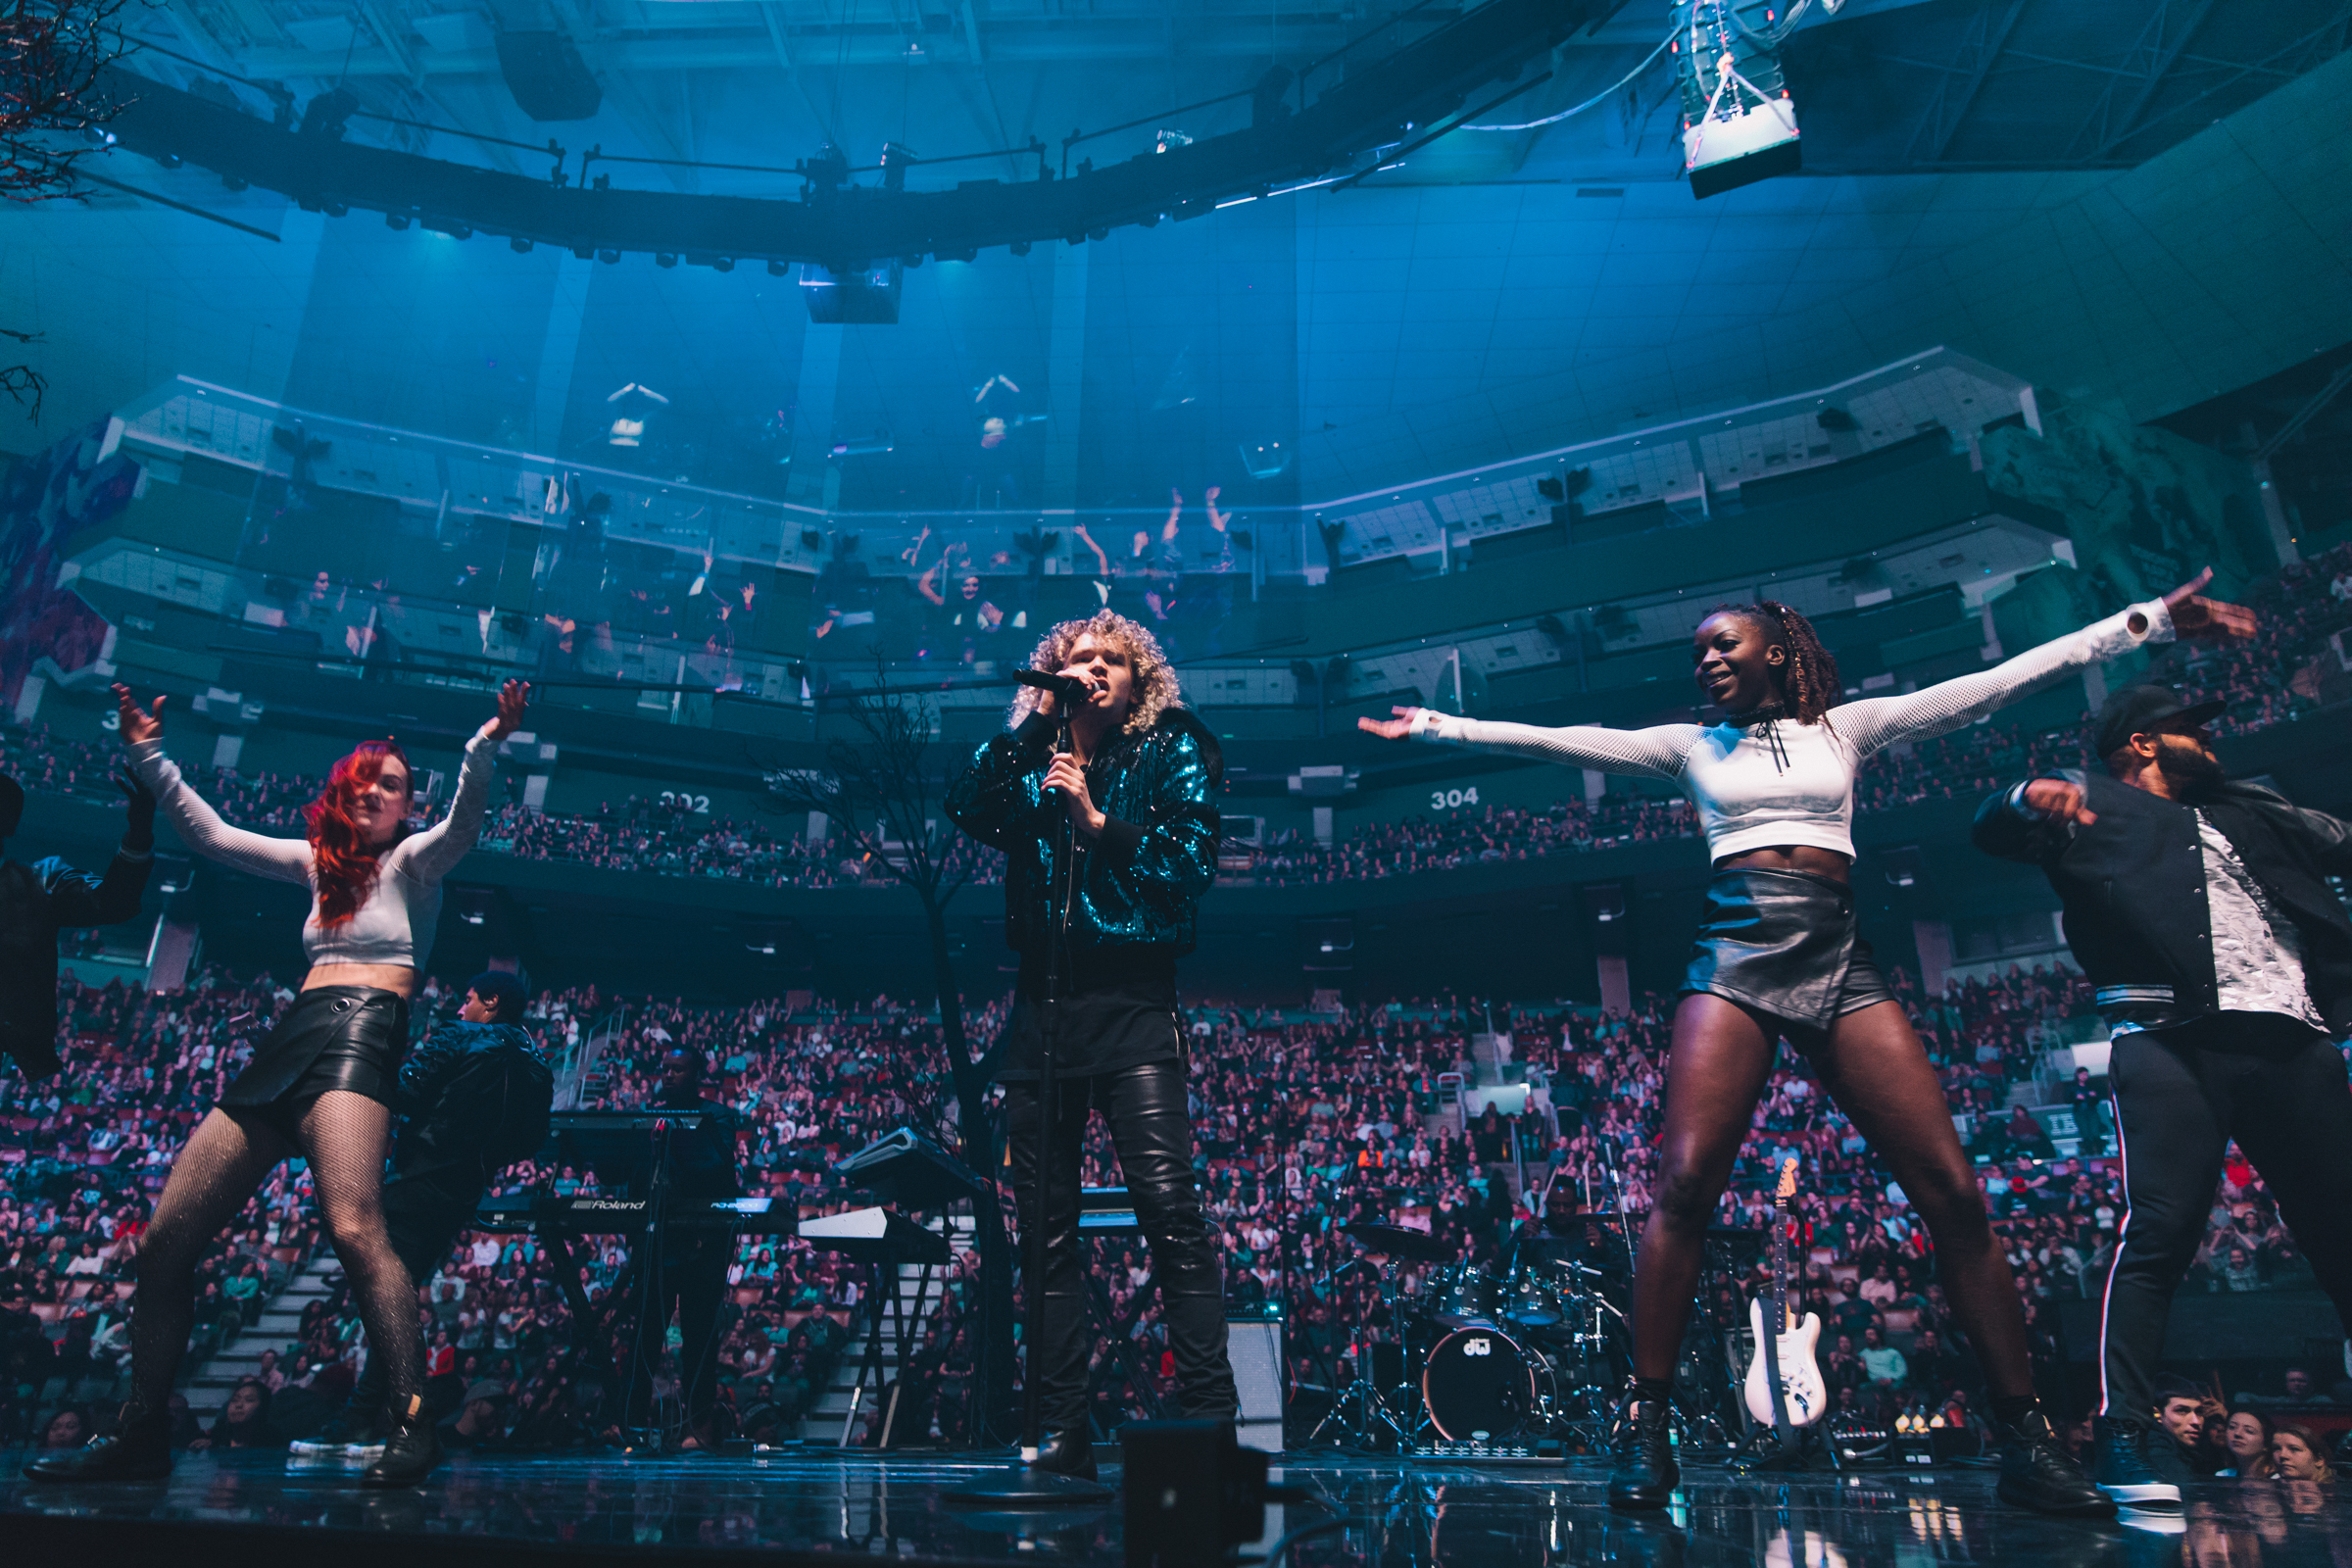 Esie Mensah for Justin Timberlake's The Man of the Woods Tour